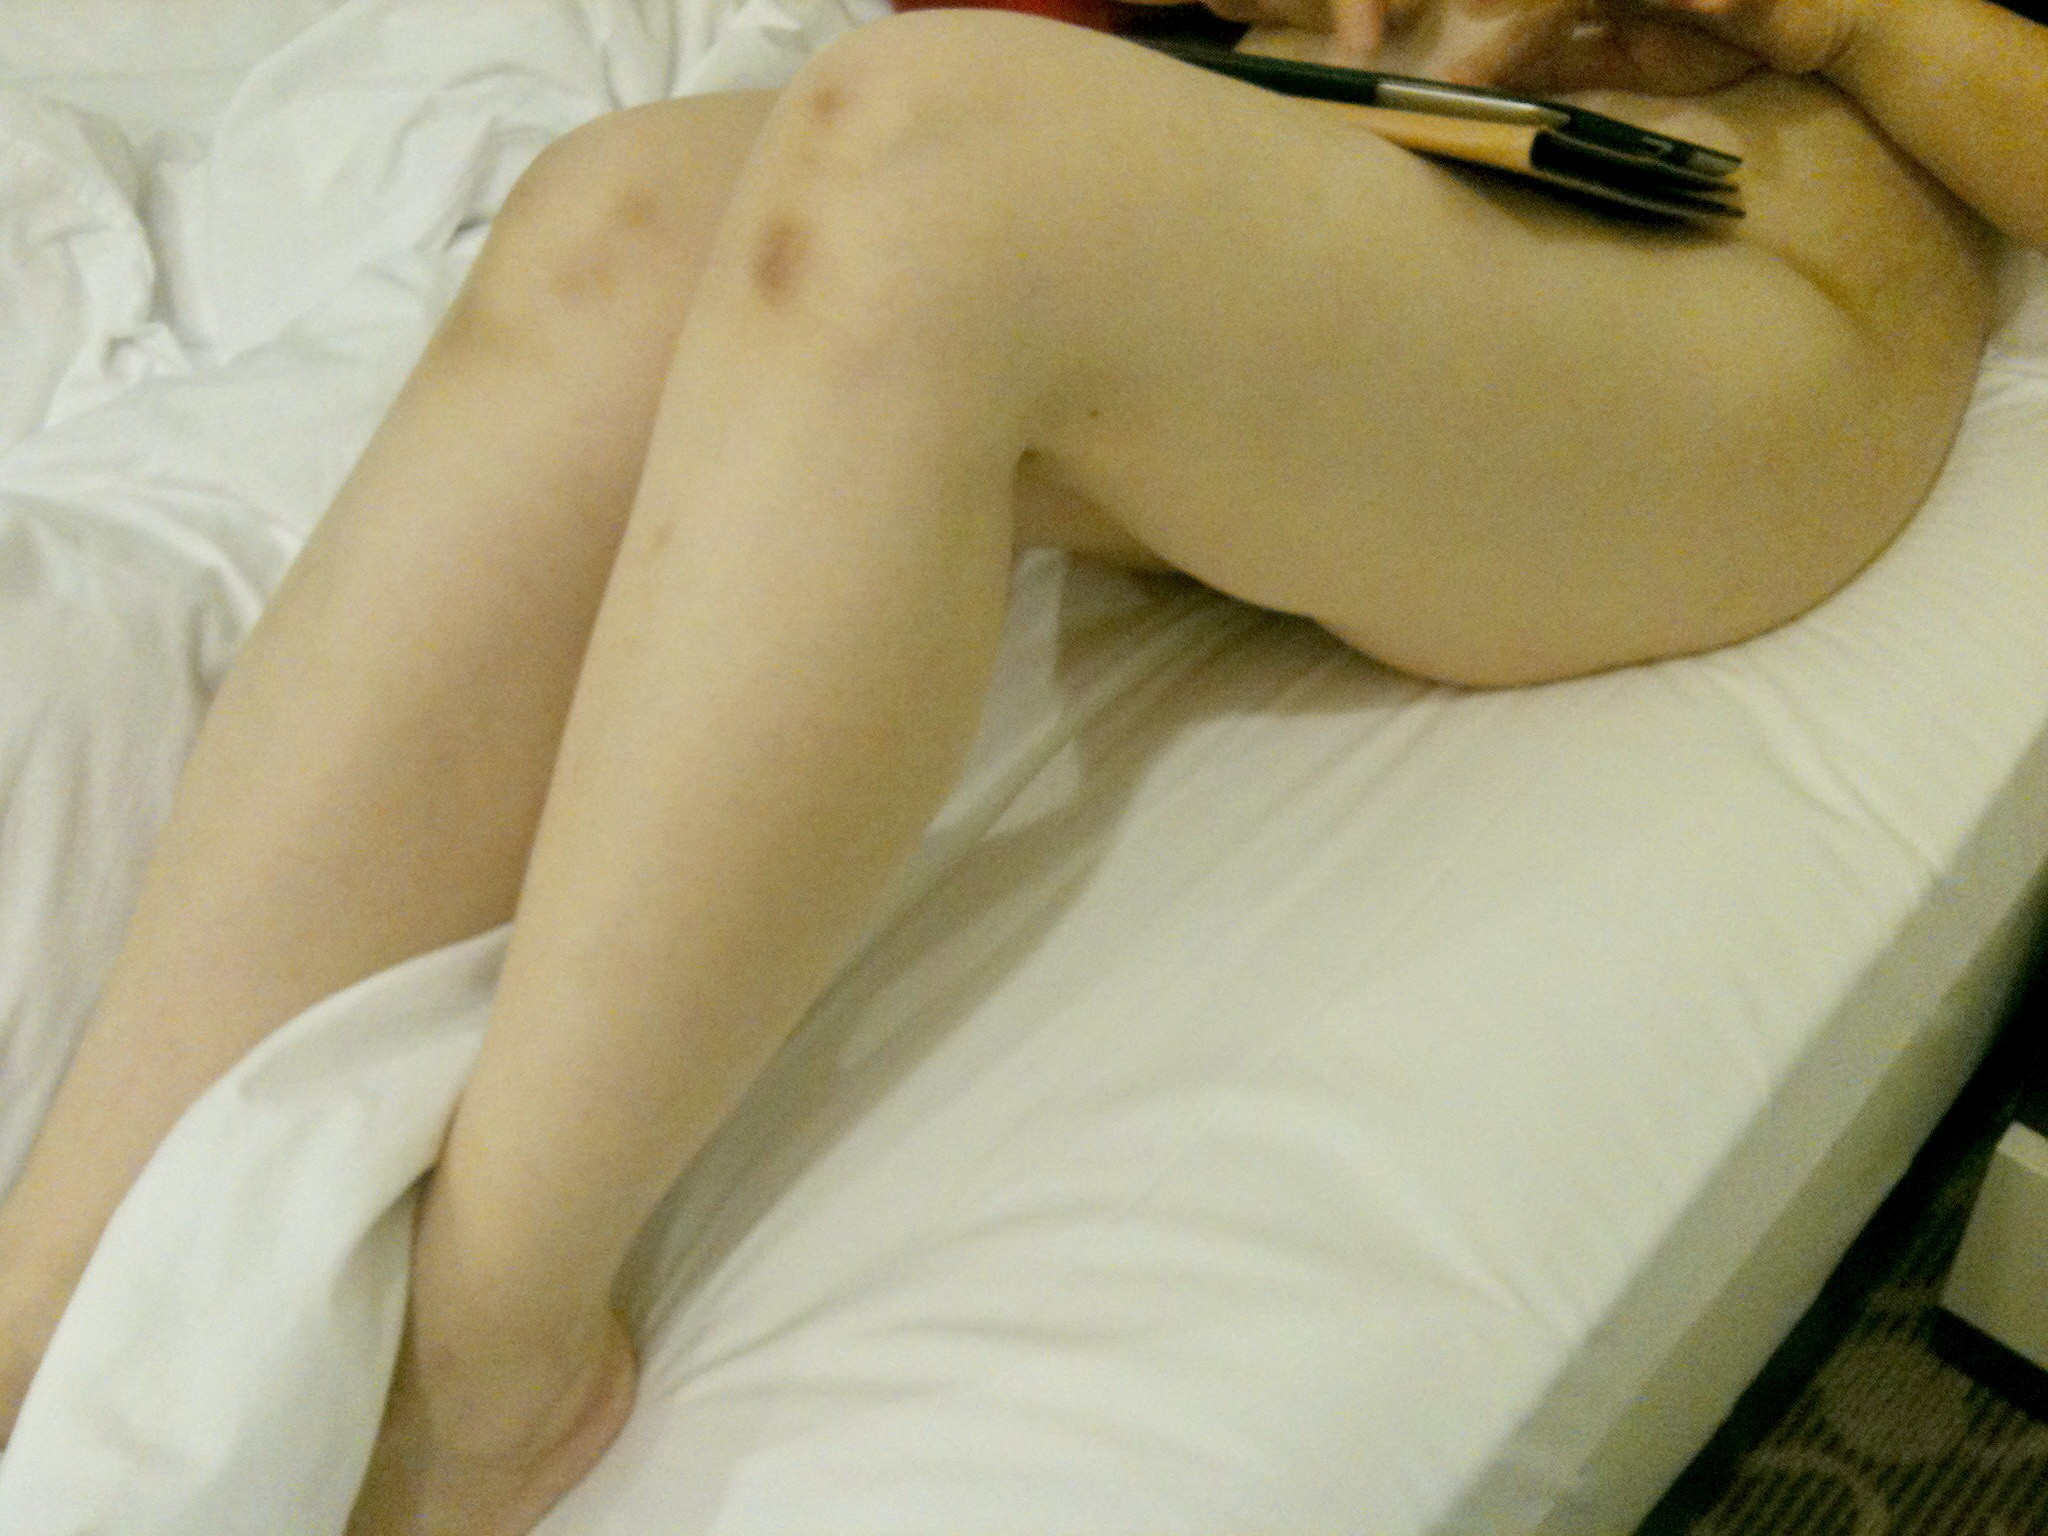 China wife showing her wears